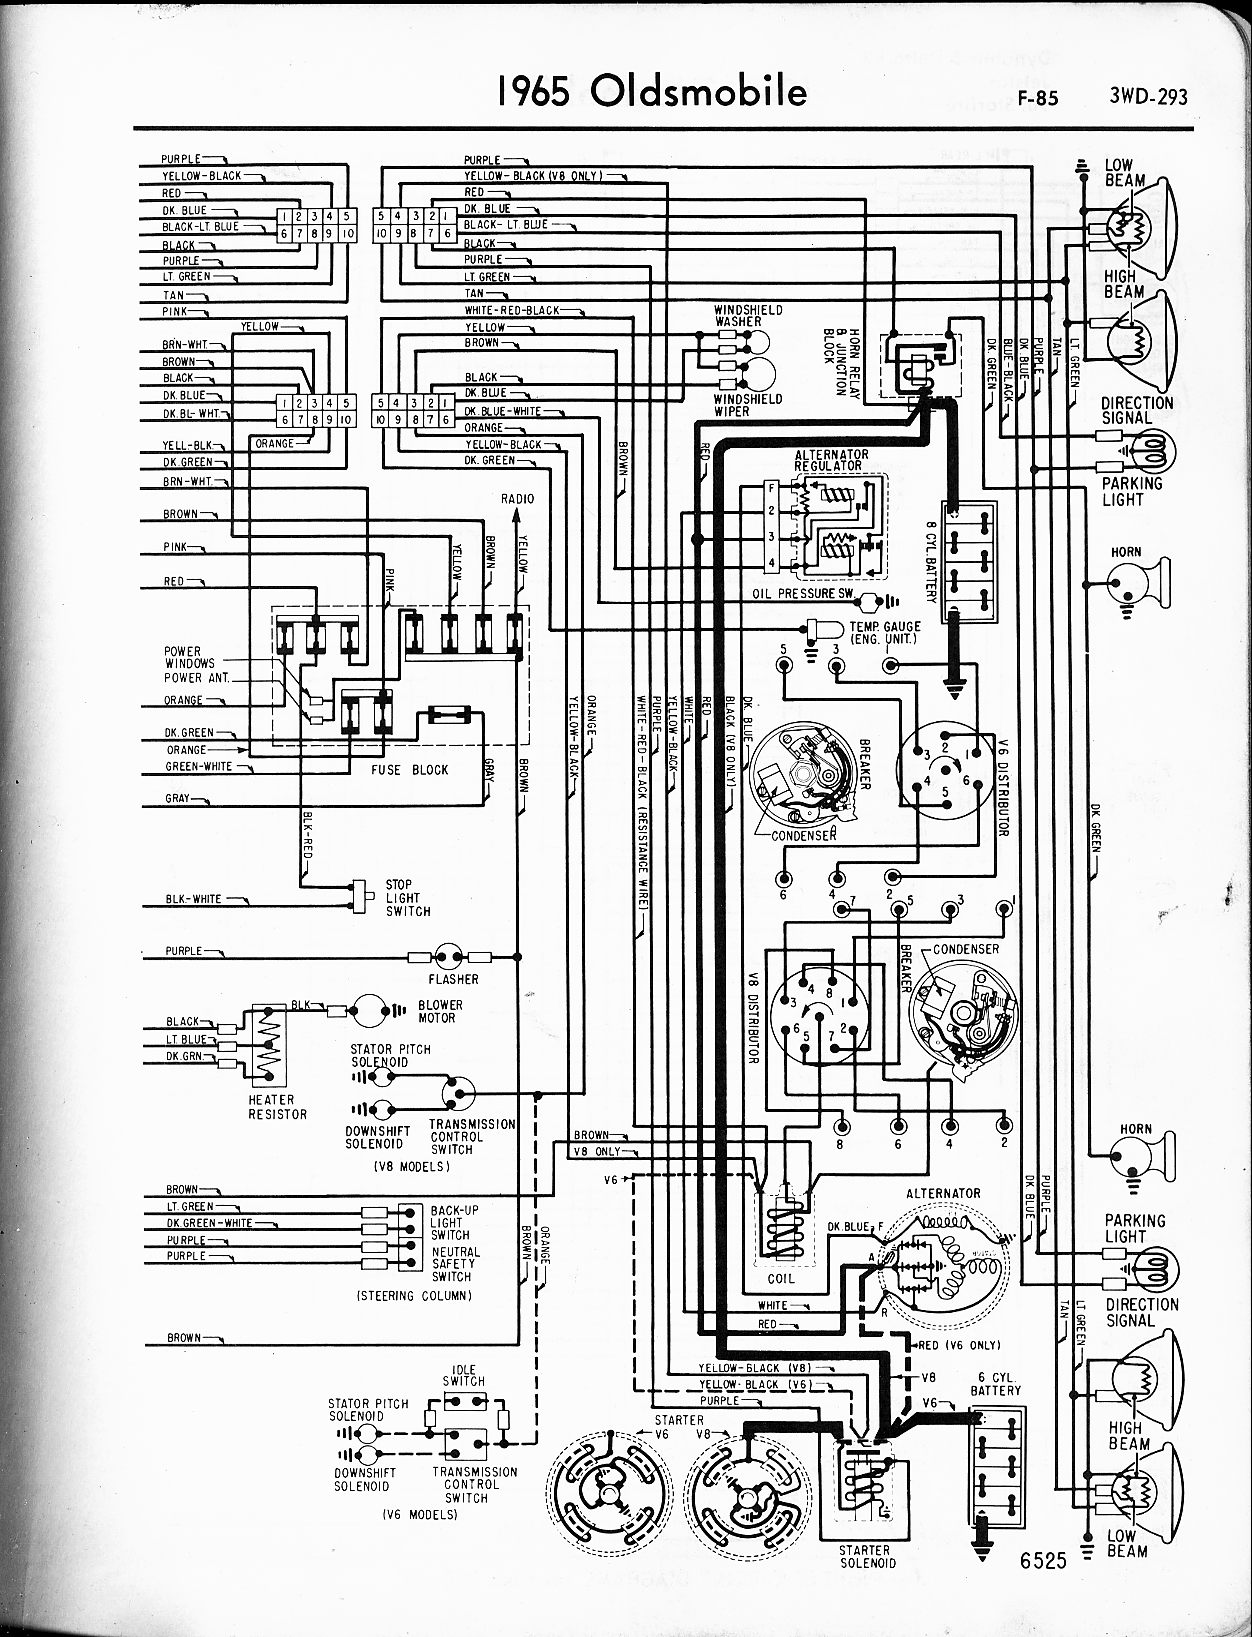 oldsmobile wiring diagrams the old car manual project 2003 buick century wiring diagram olds i& 39;m looking for a wiring diagram